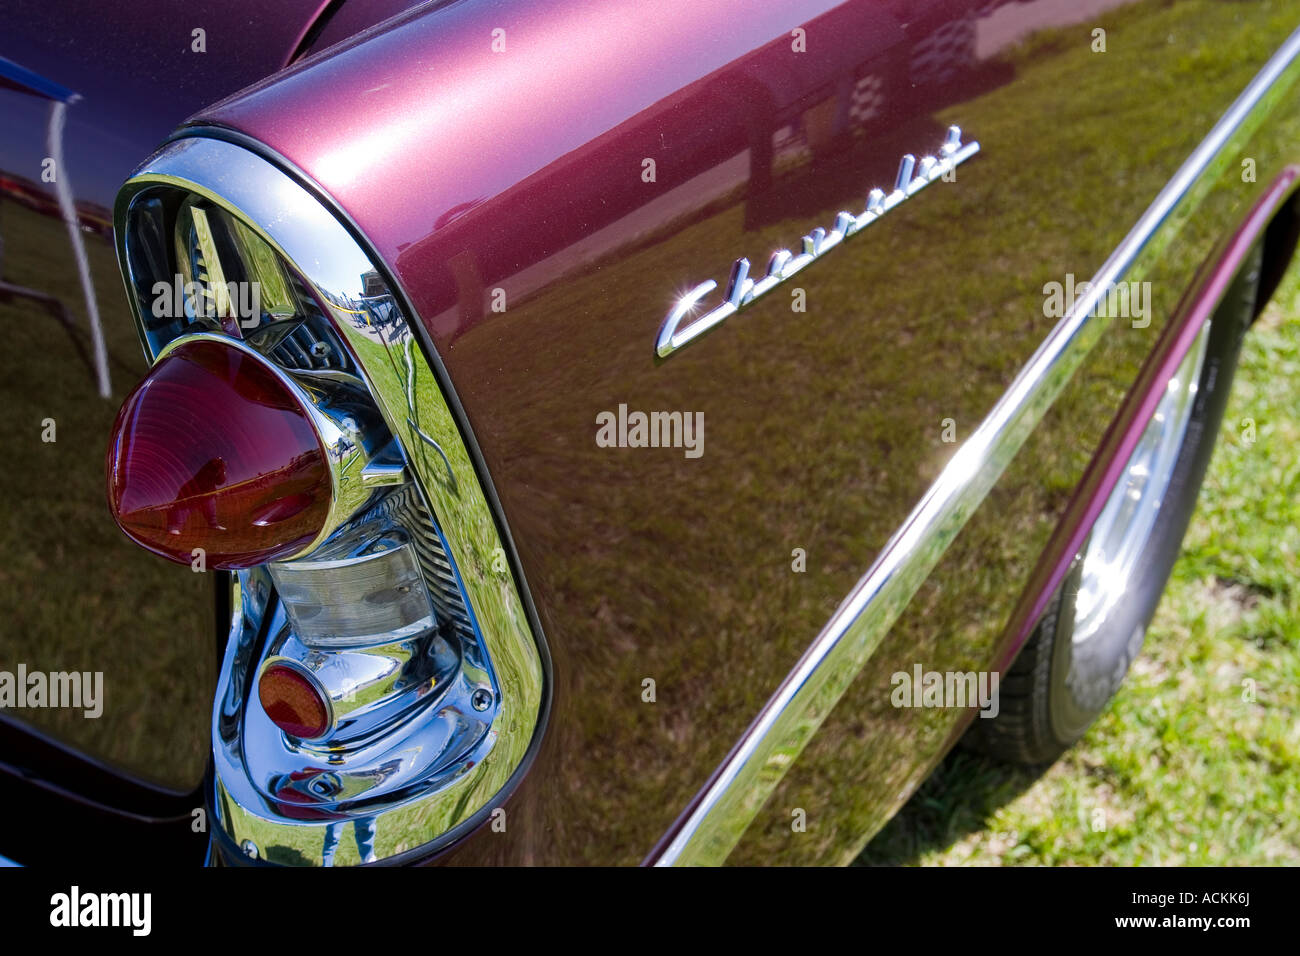 Tail Light Fin And Name Plate On The Side Of A Maroon Chevrolet Bel Air Classic Car At An Auto Show